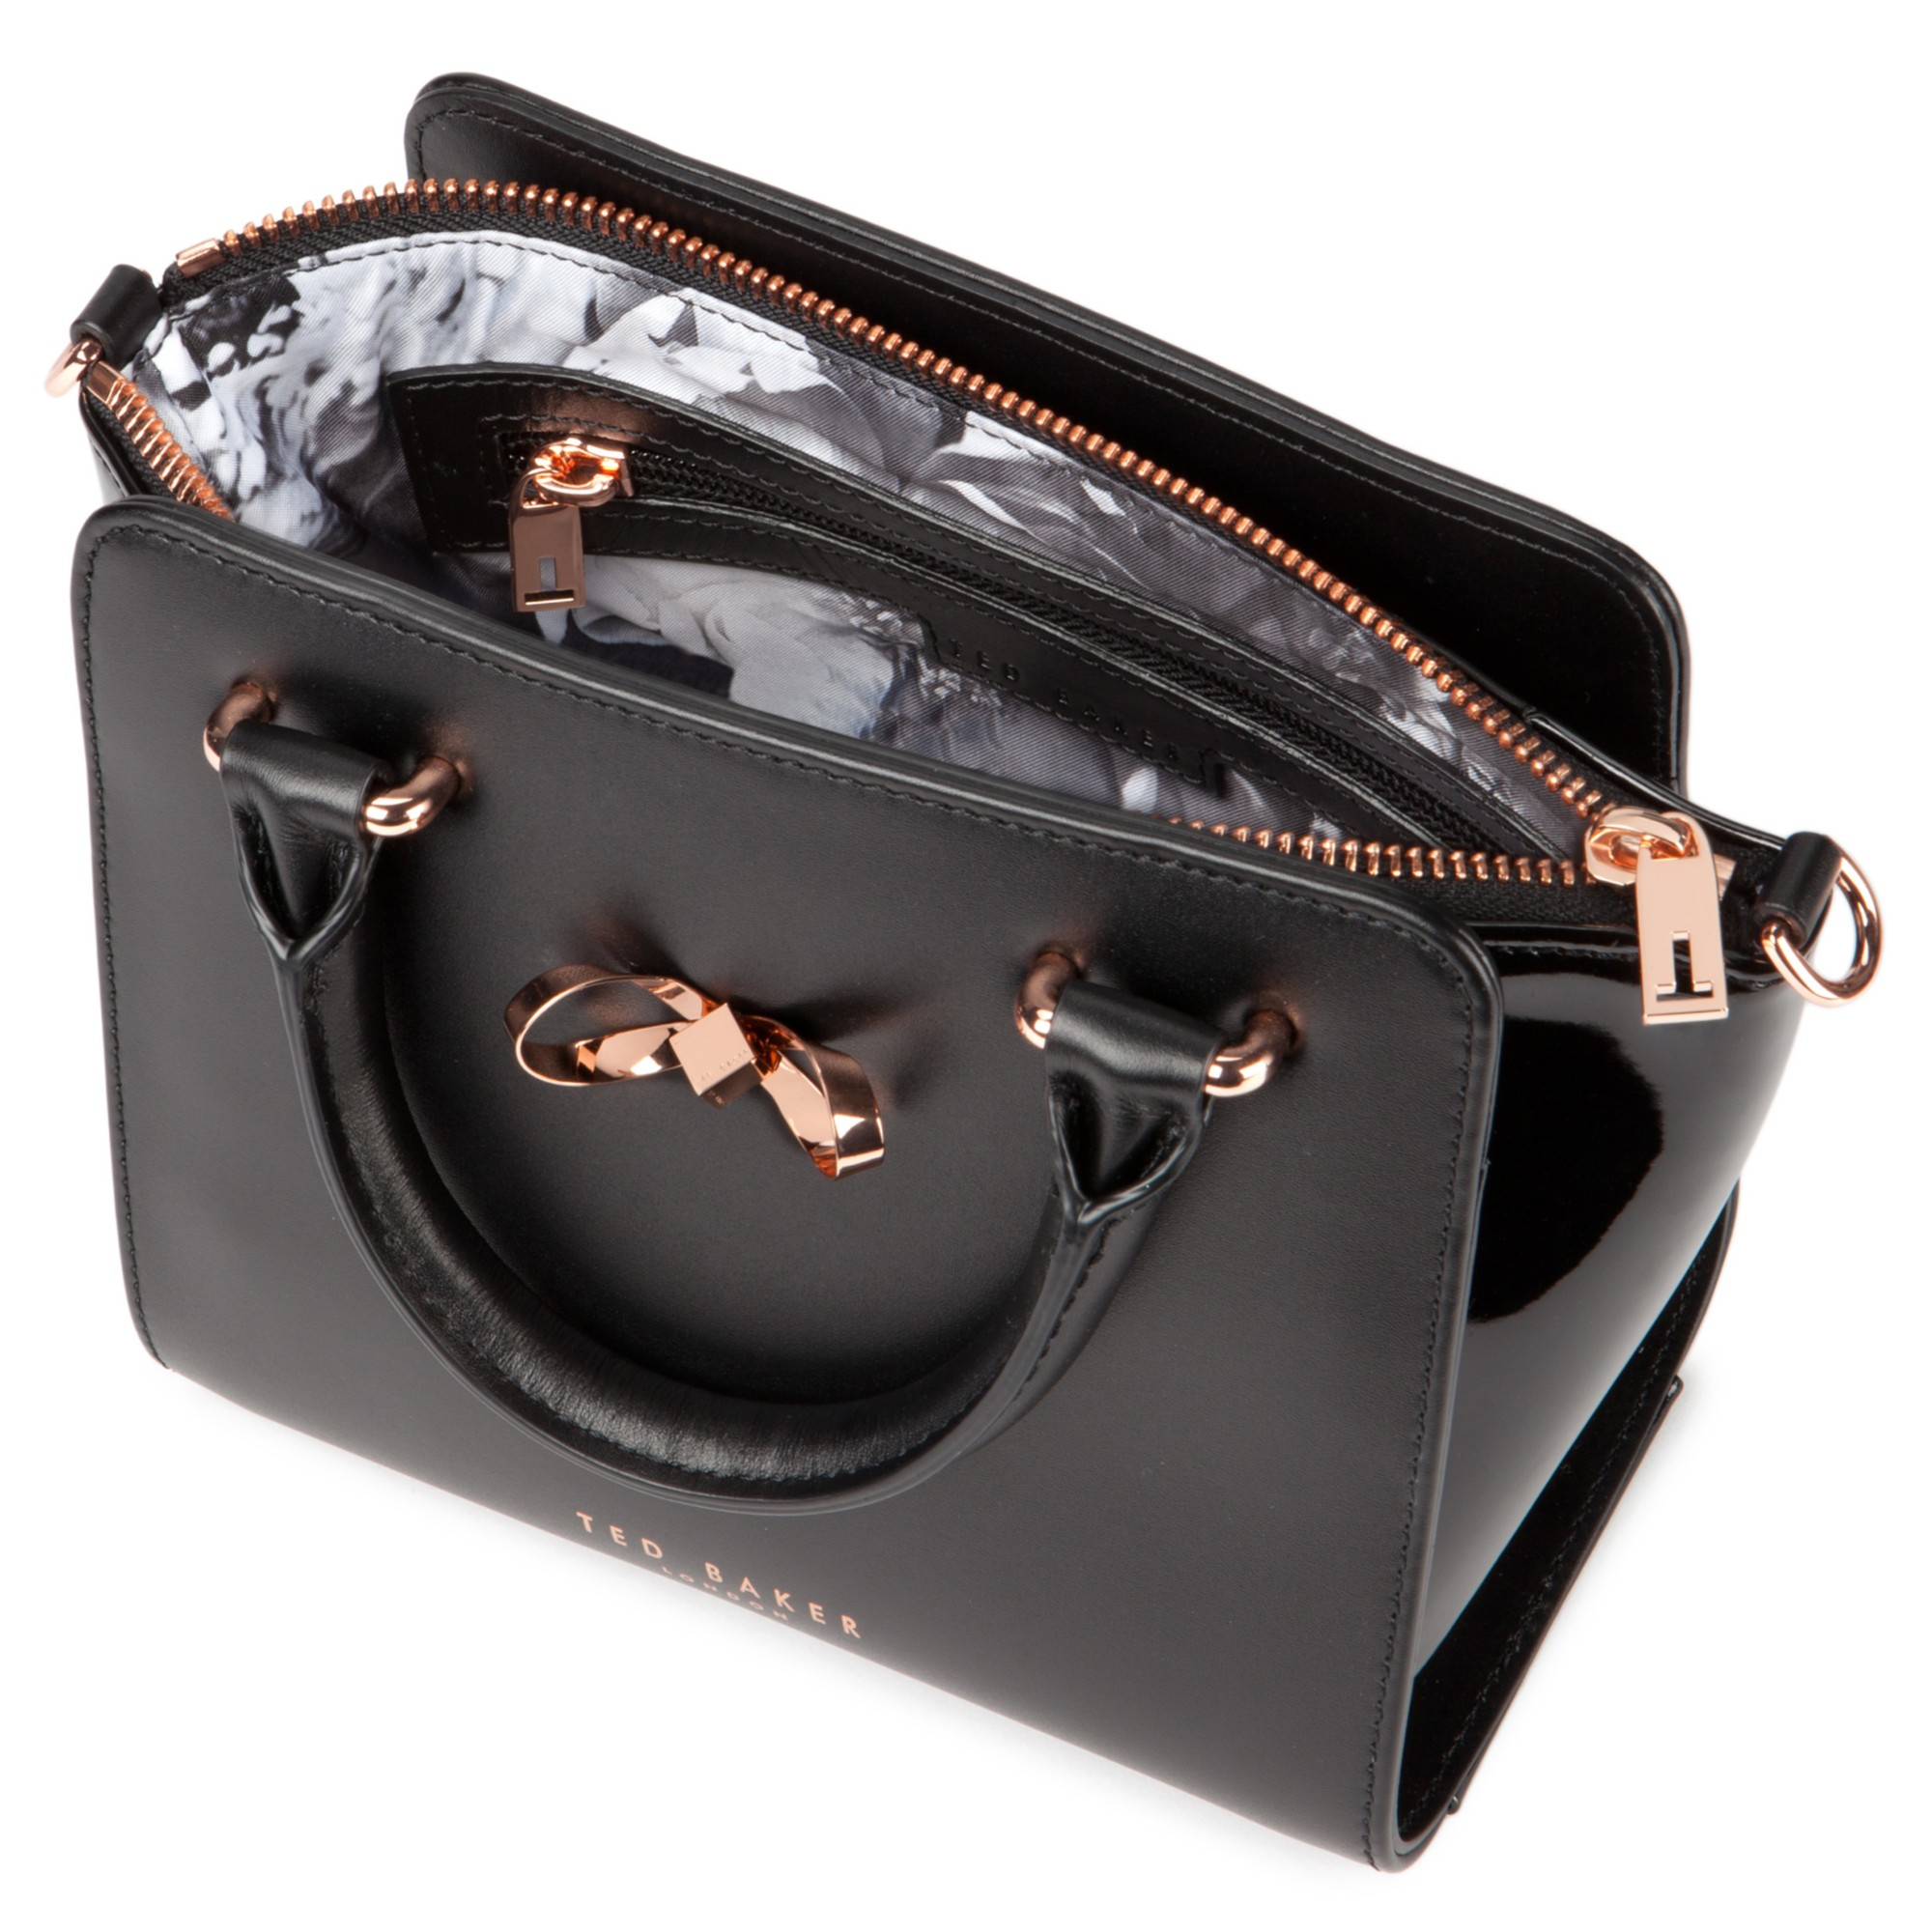 ed99efff6 Ted Baker Perie Bow Mini Leather Tote Bag in Black - Lyst